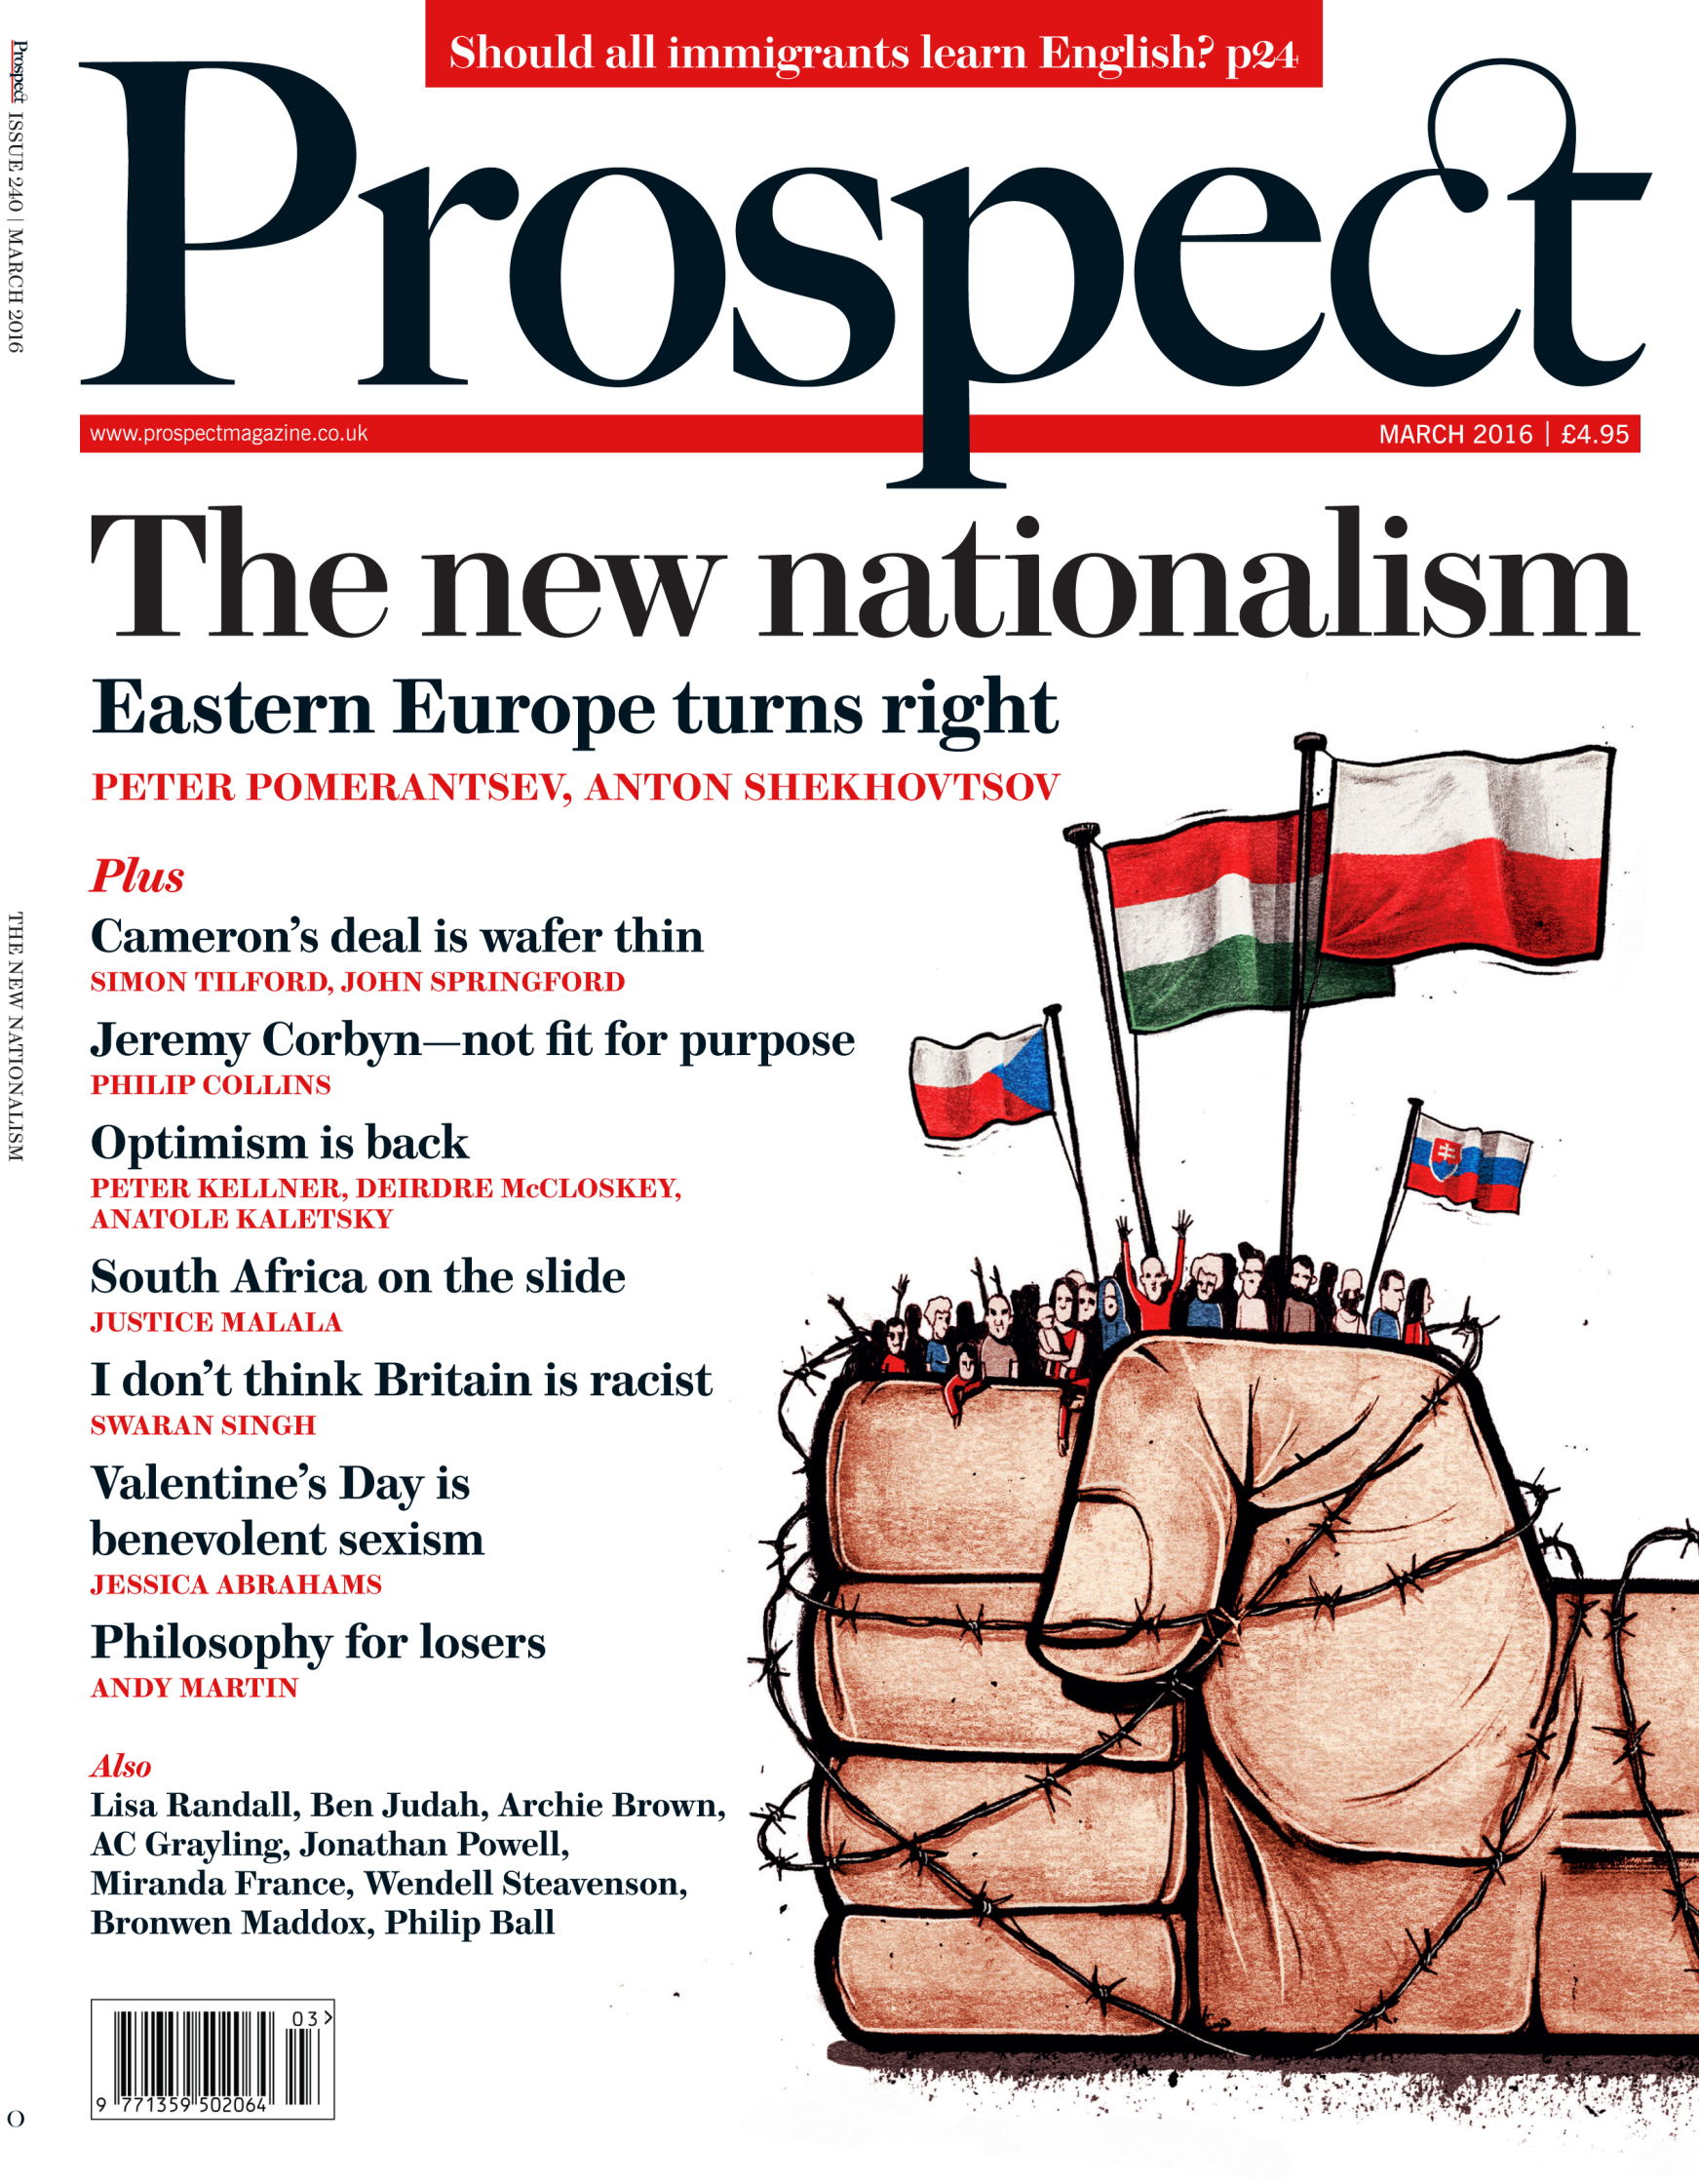 (PAGE 1) Prospect_cover_March2016.jpg